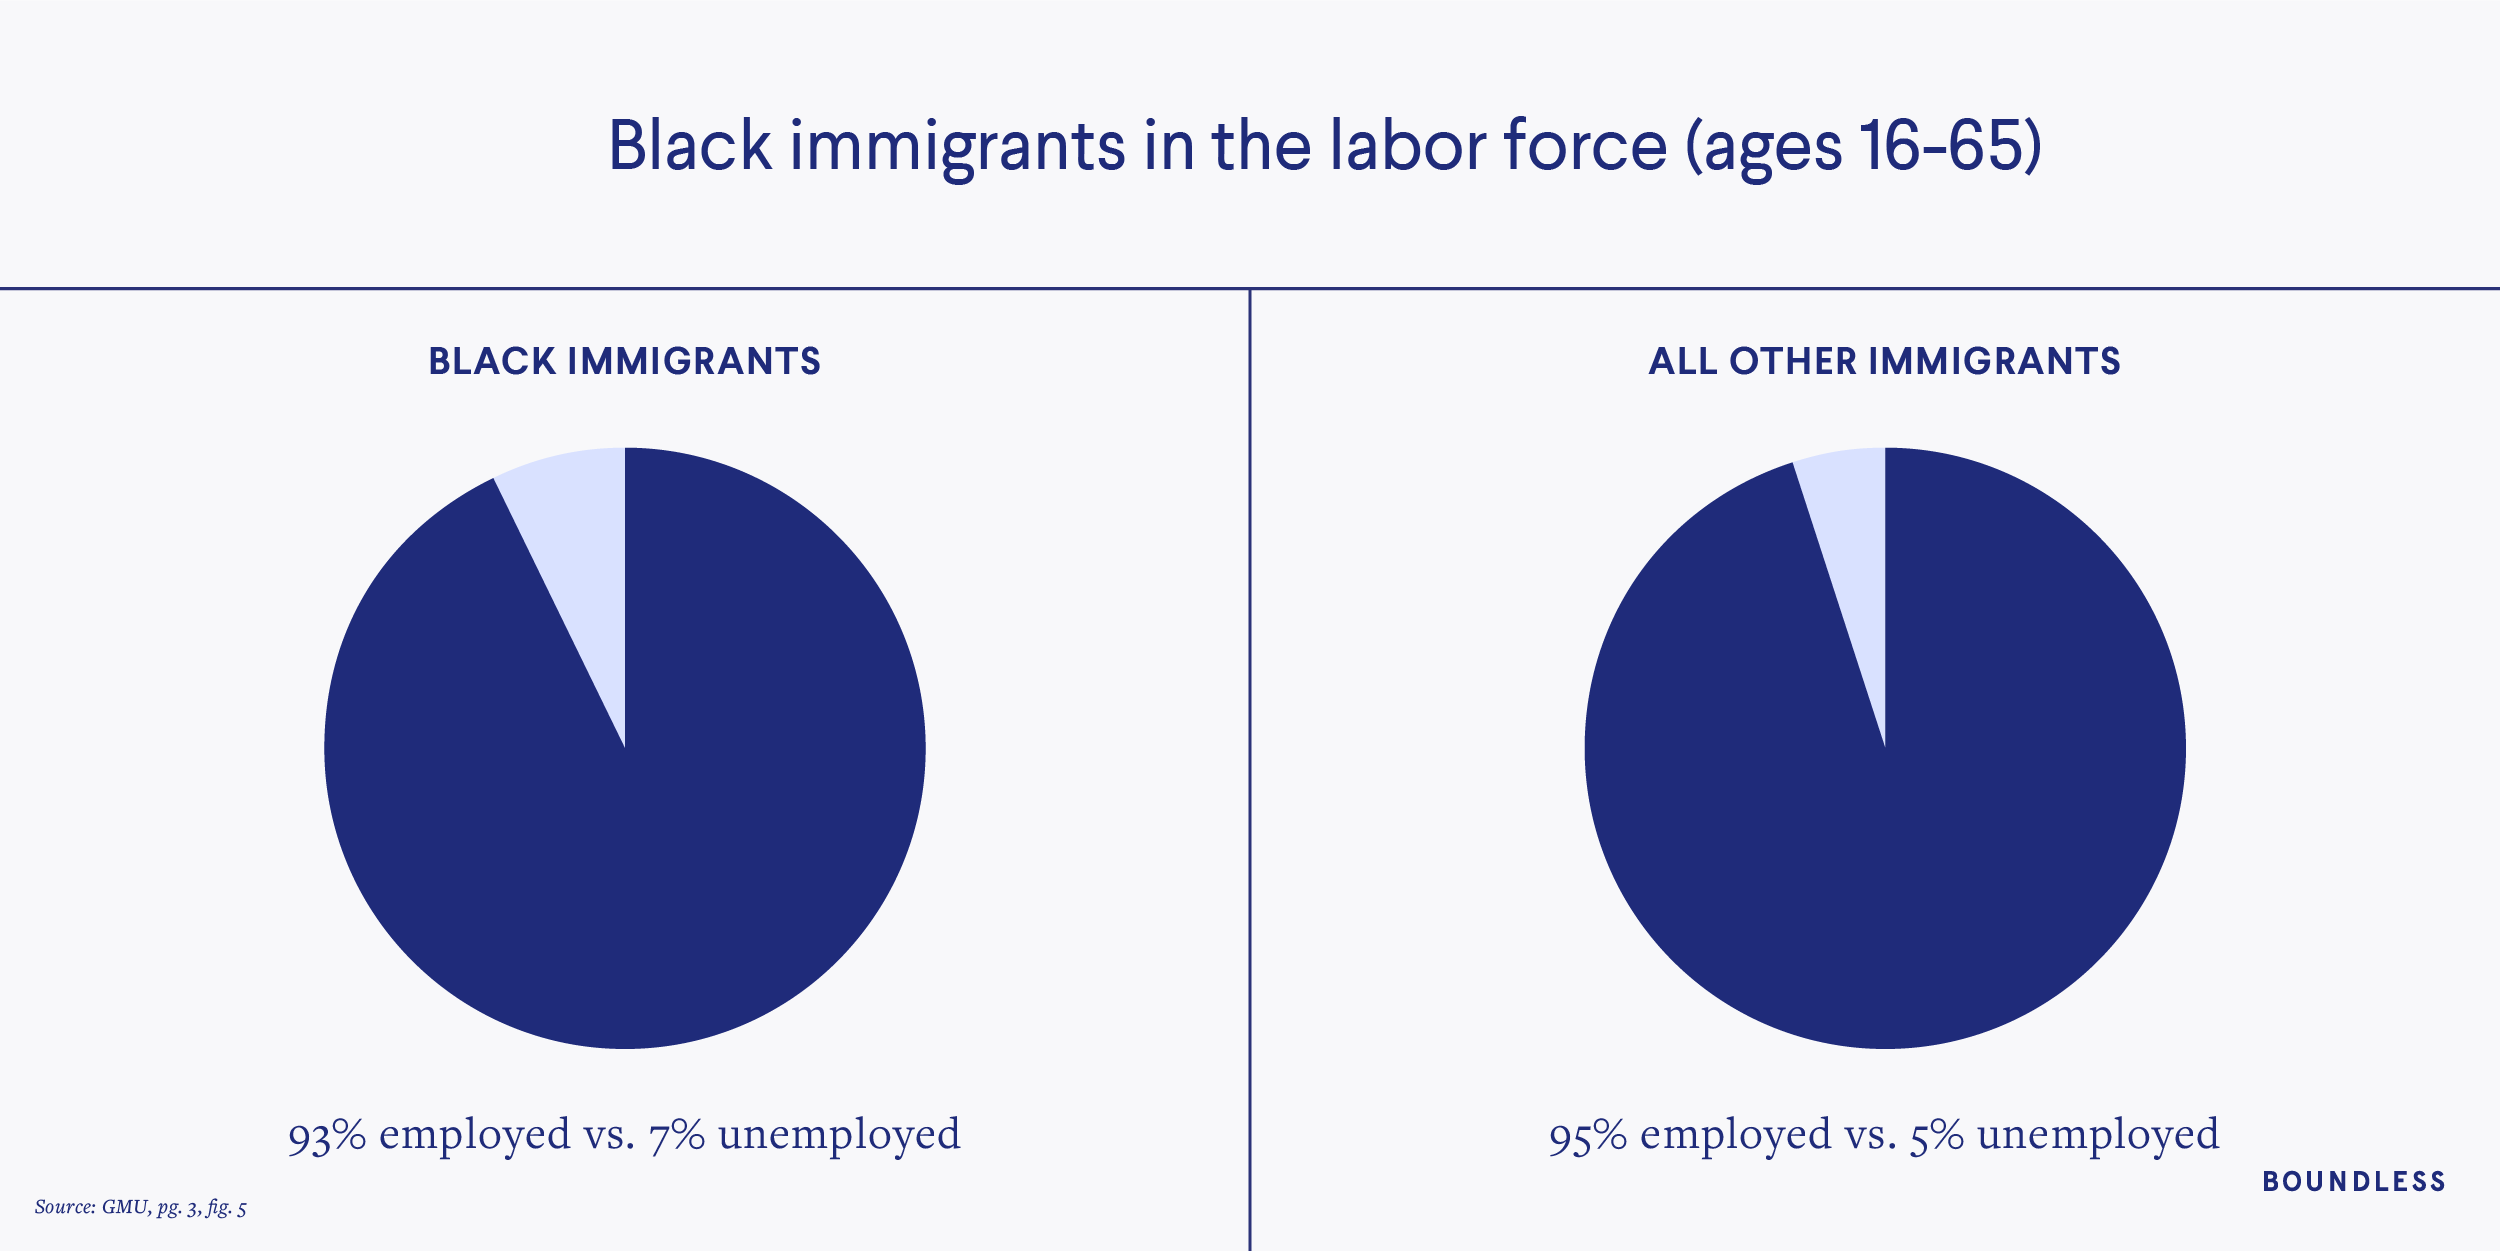 Black immigrants in the labor force